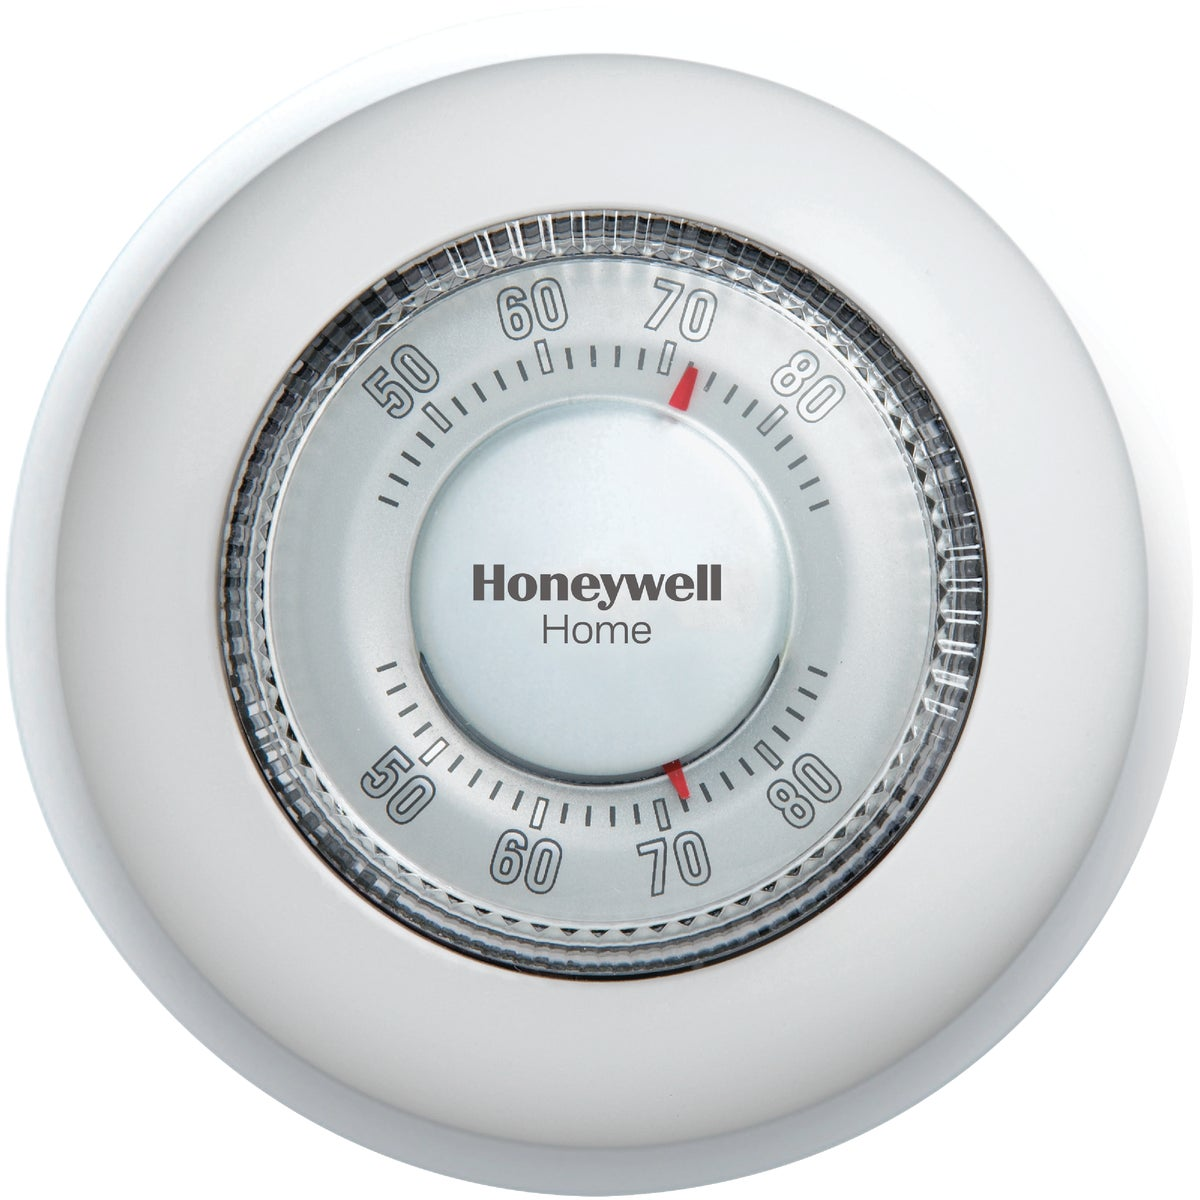 HEAT ONLY RND THERMOSTAT - YCT87K1003 by Honeywell Internatl